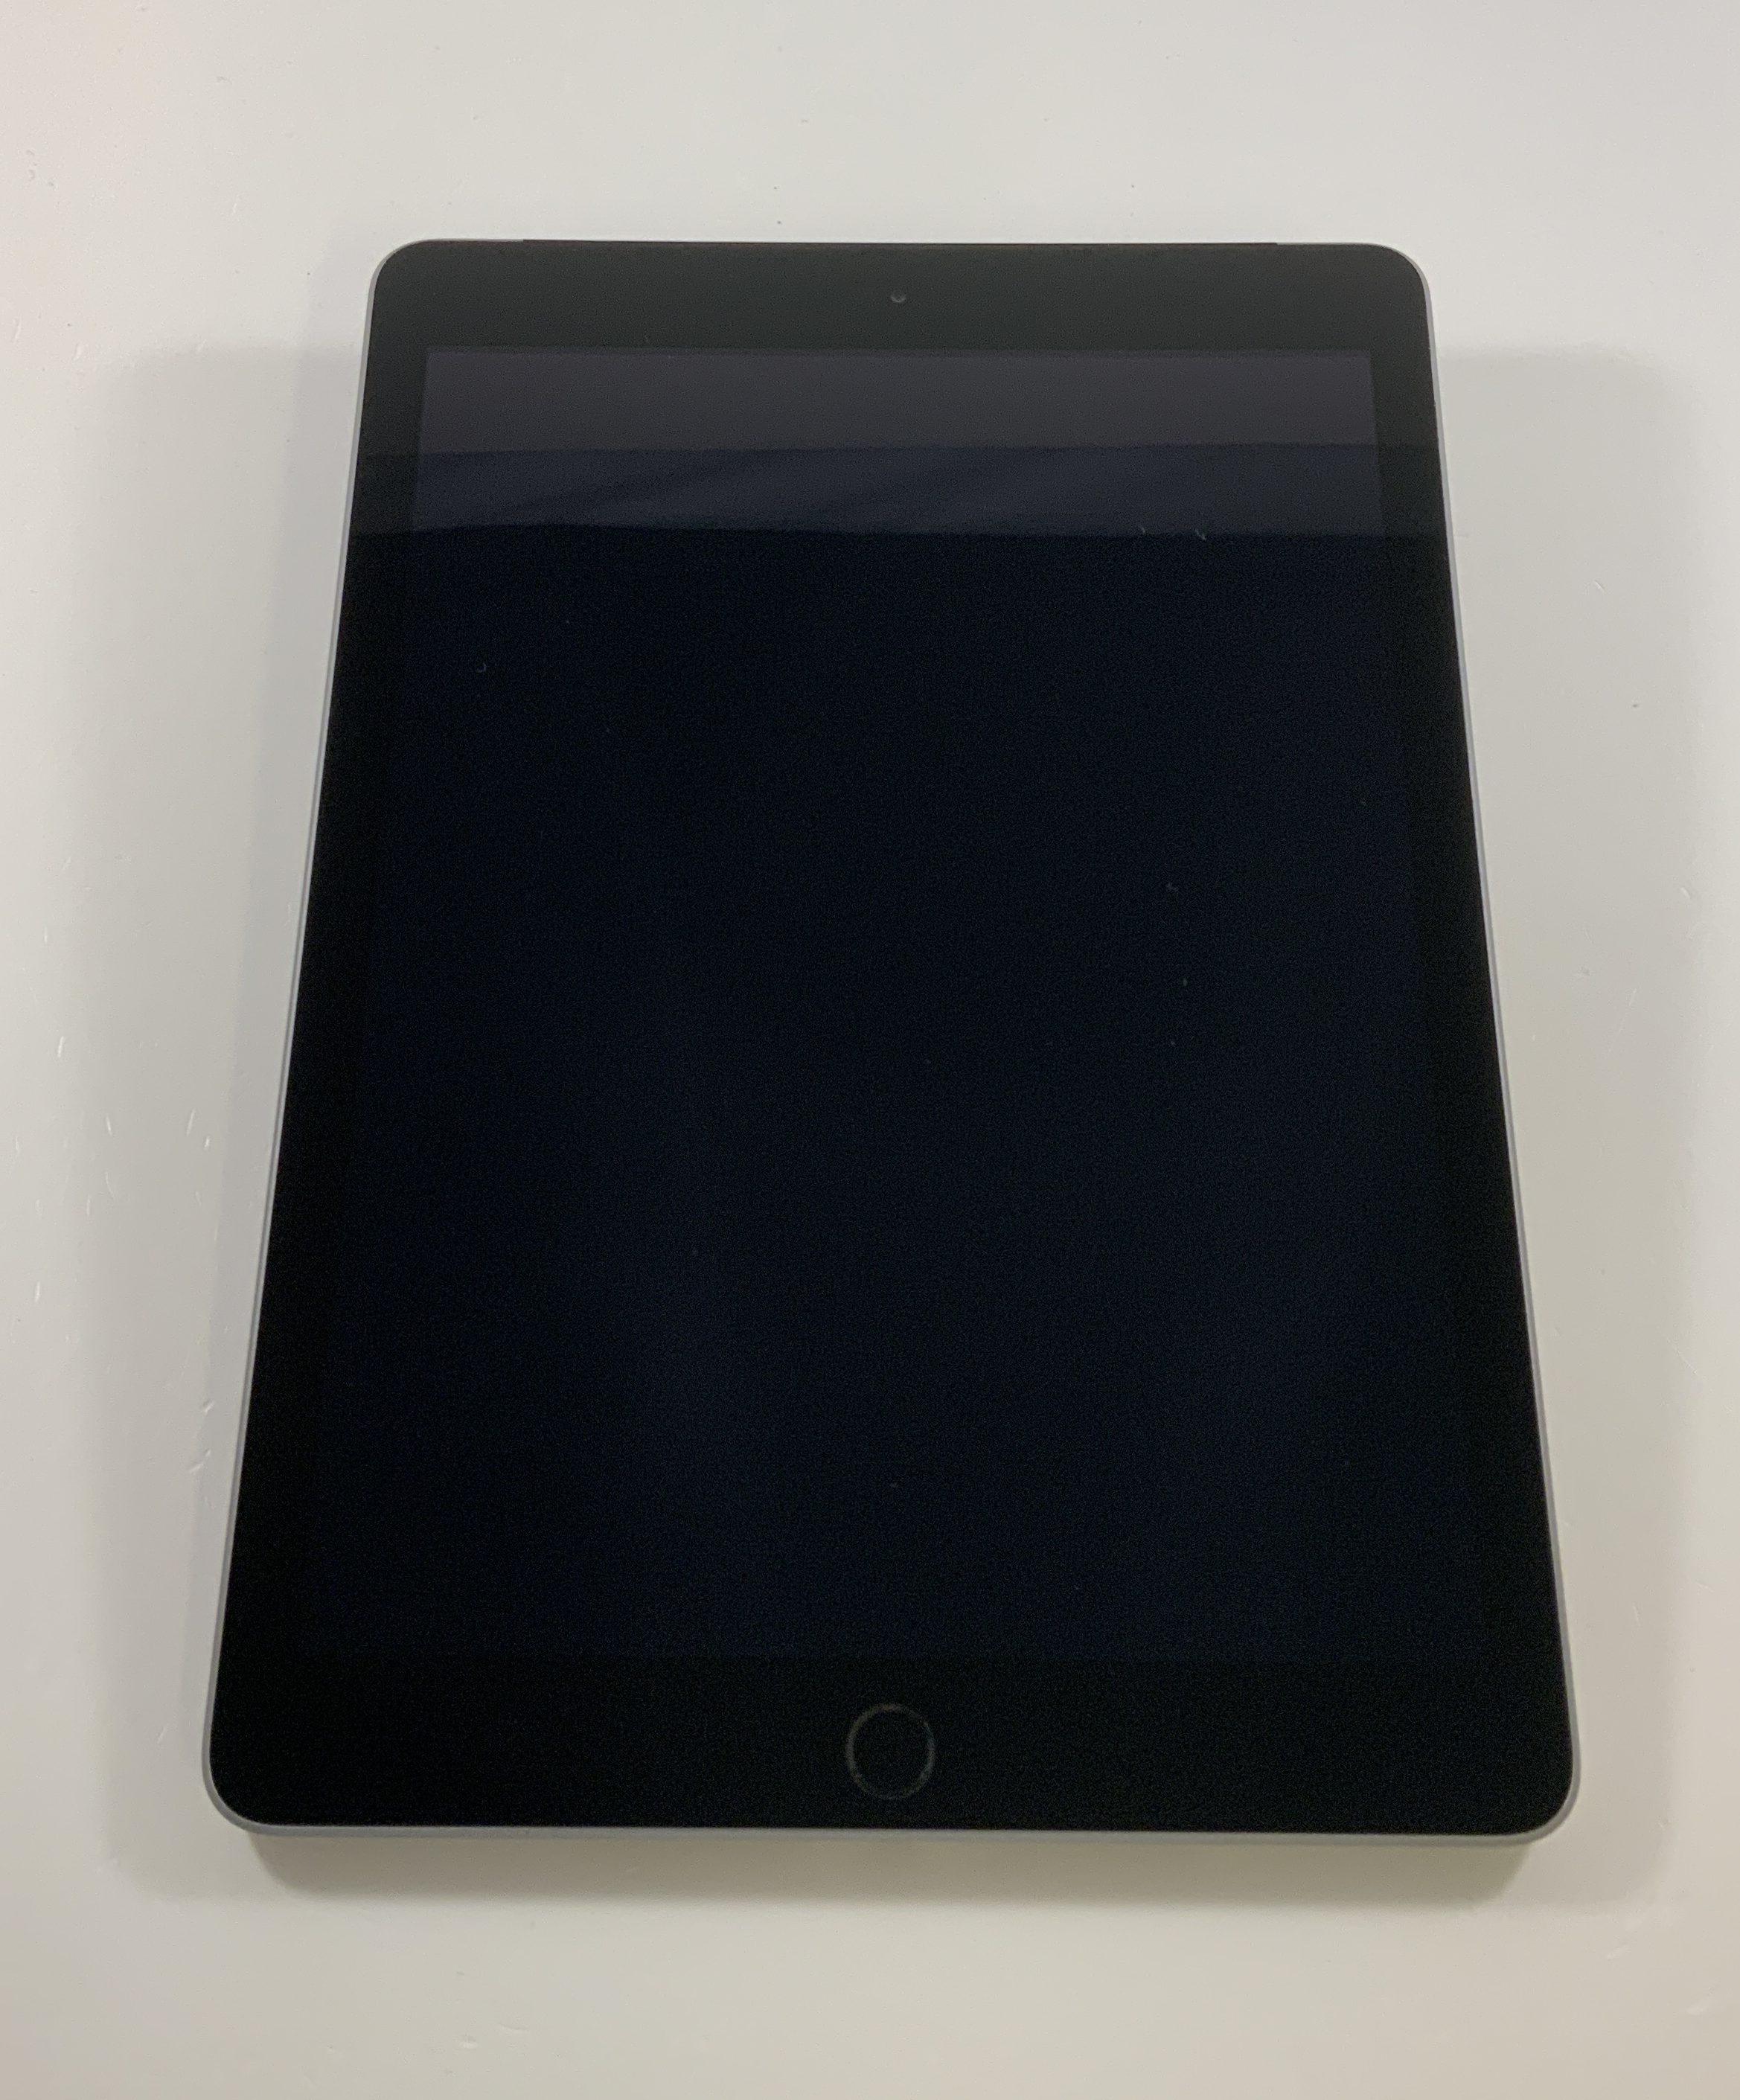 iPad 5 Wi-Fi + Cellular 128GB, 128GB, Space Gray, obraz 1